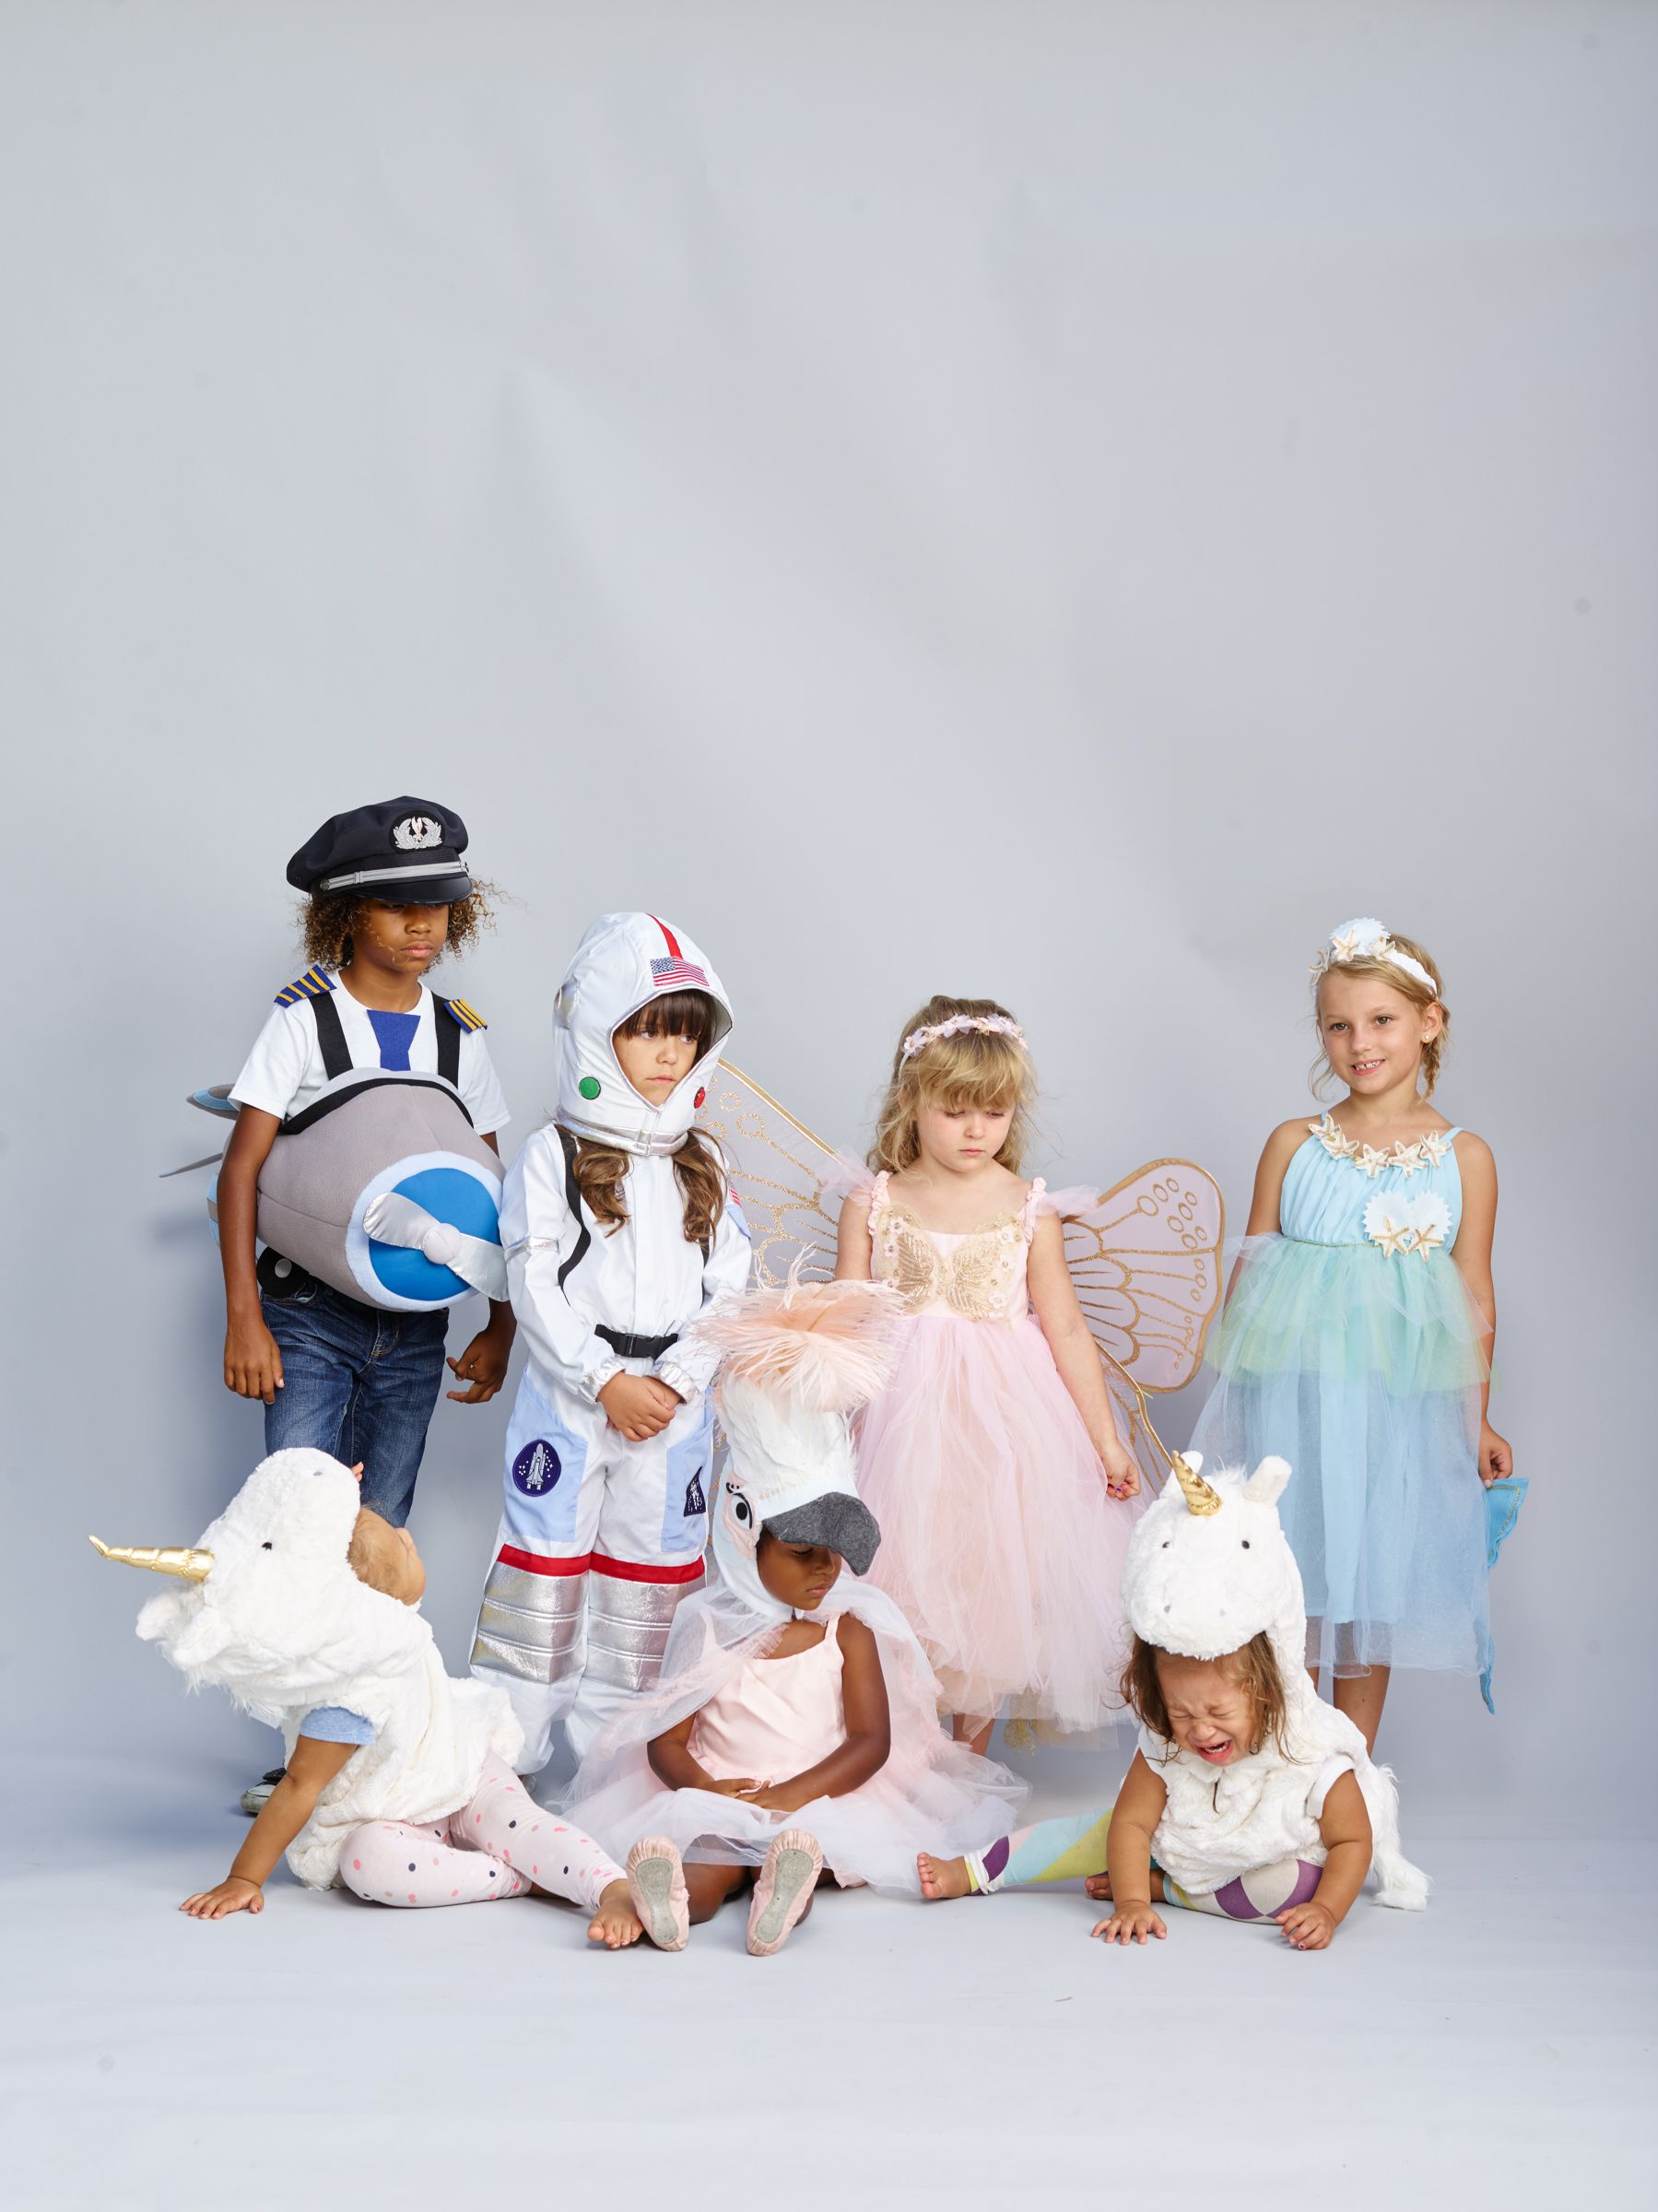 Halloween Costume Ideas That Get the Whole Family Involved